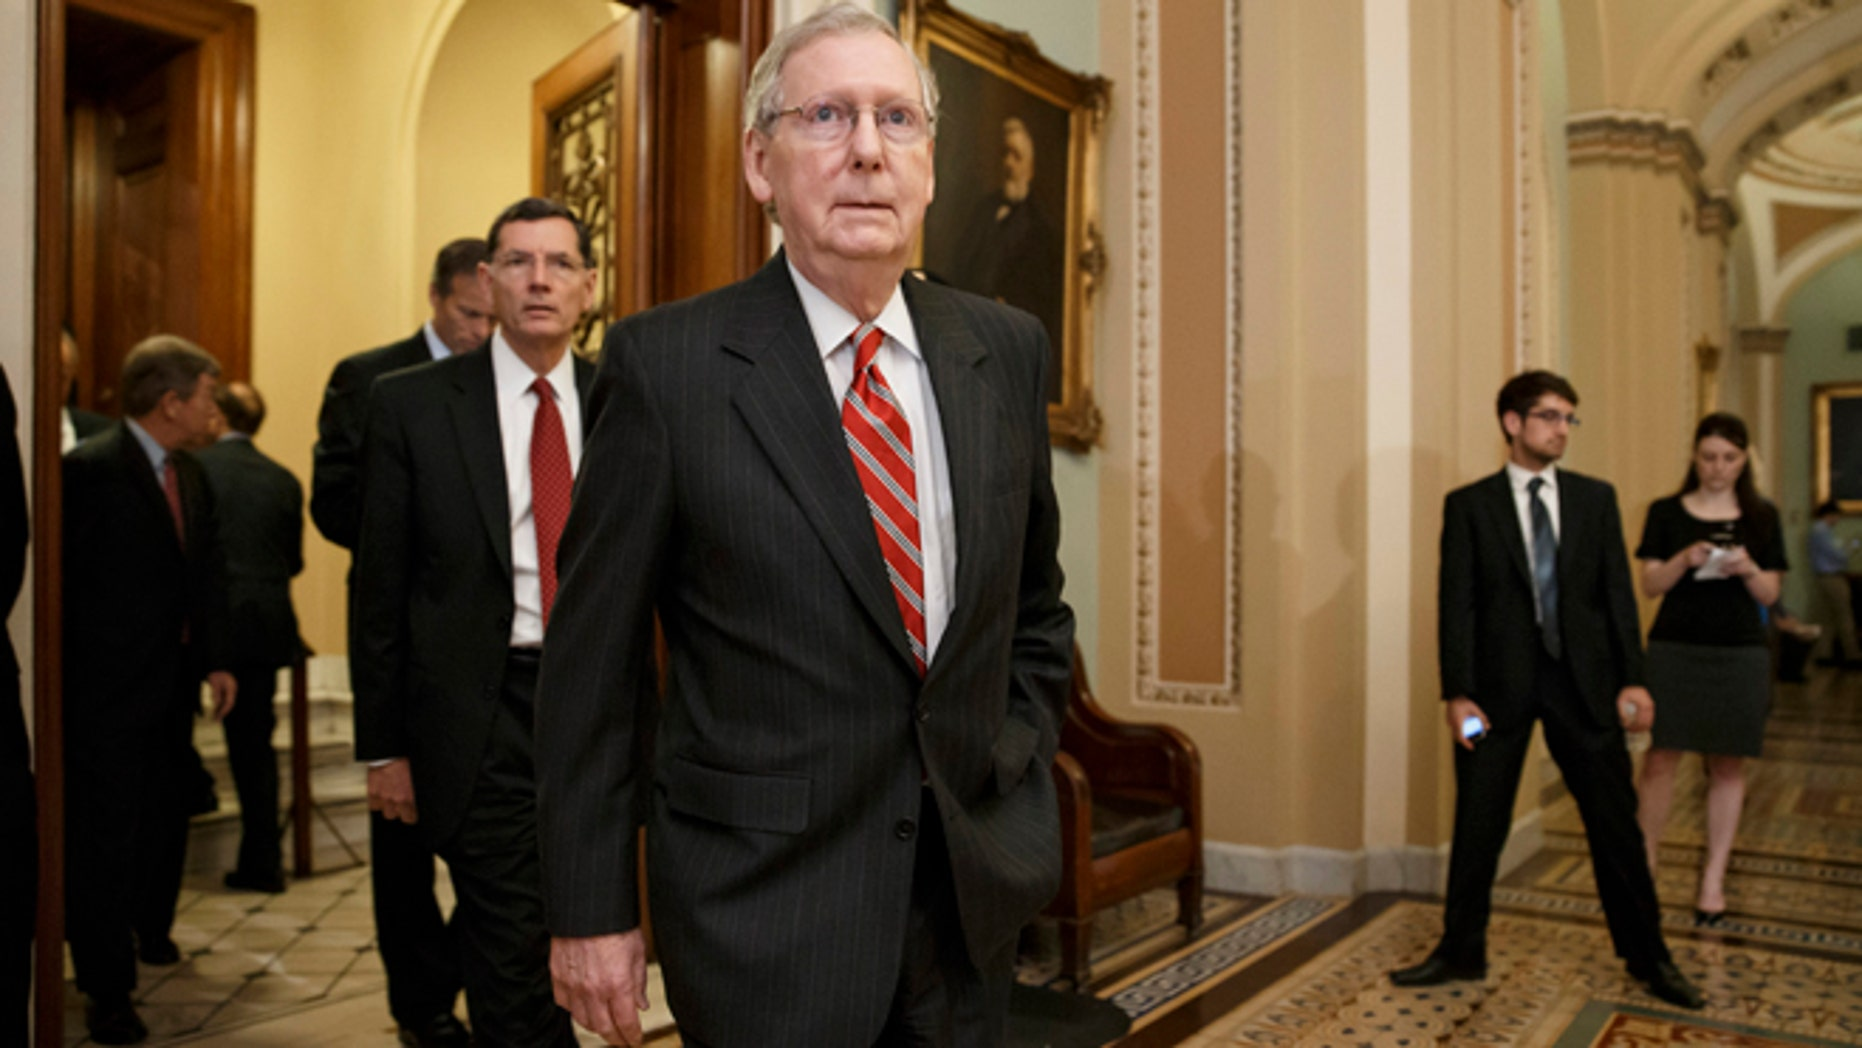 May 13, 2014: Senate Minority Leader Mitch McConnell of Ky. and other GOP lawmakers walk to meet reporters after a Republican caucus meeting on Capitol Hill in Washington.